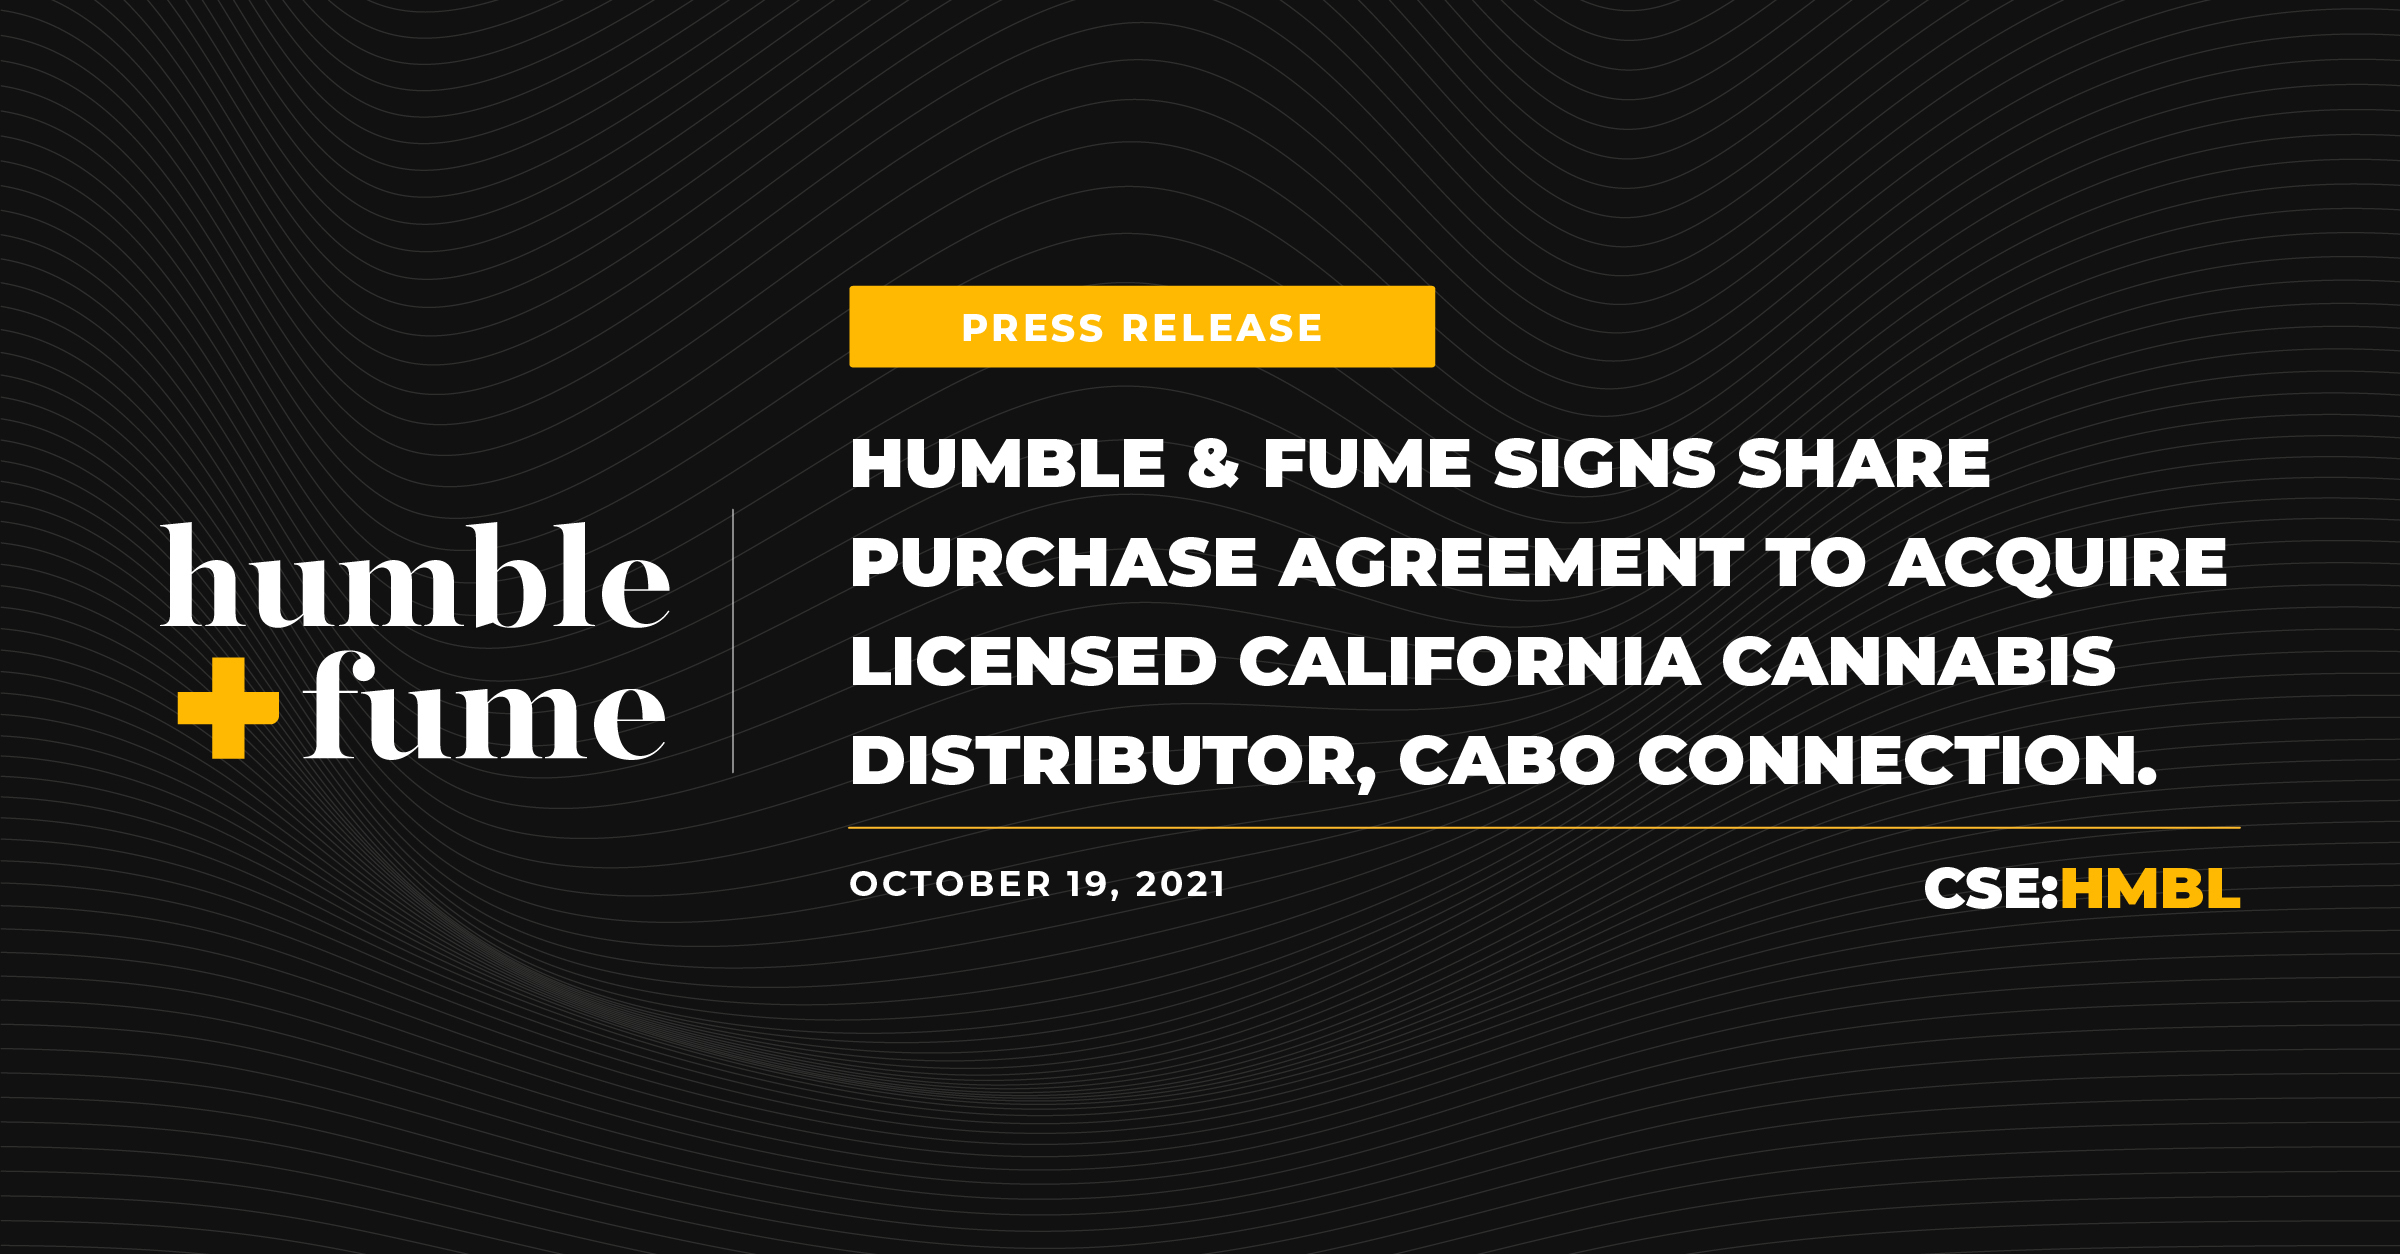 Humble & Fume Signs Share Purchase Agreement to Acquire Licensed California Cannabis Distributor, Cabo Connection